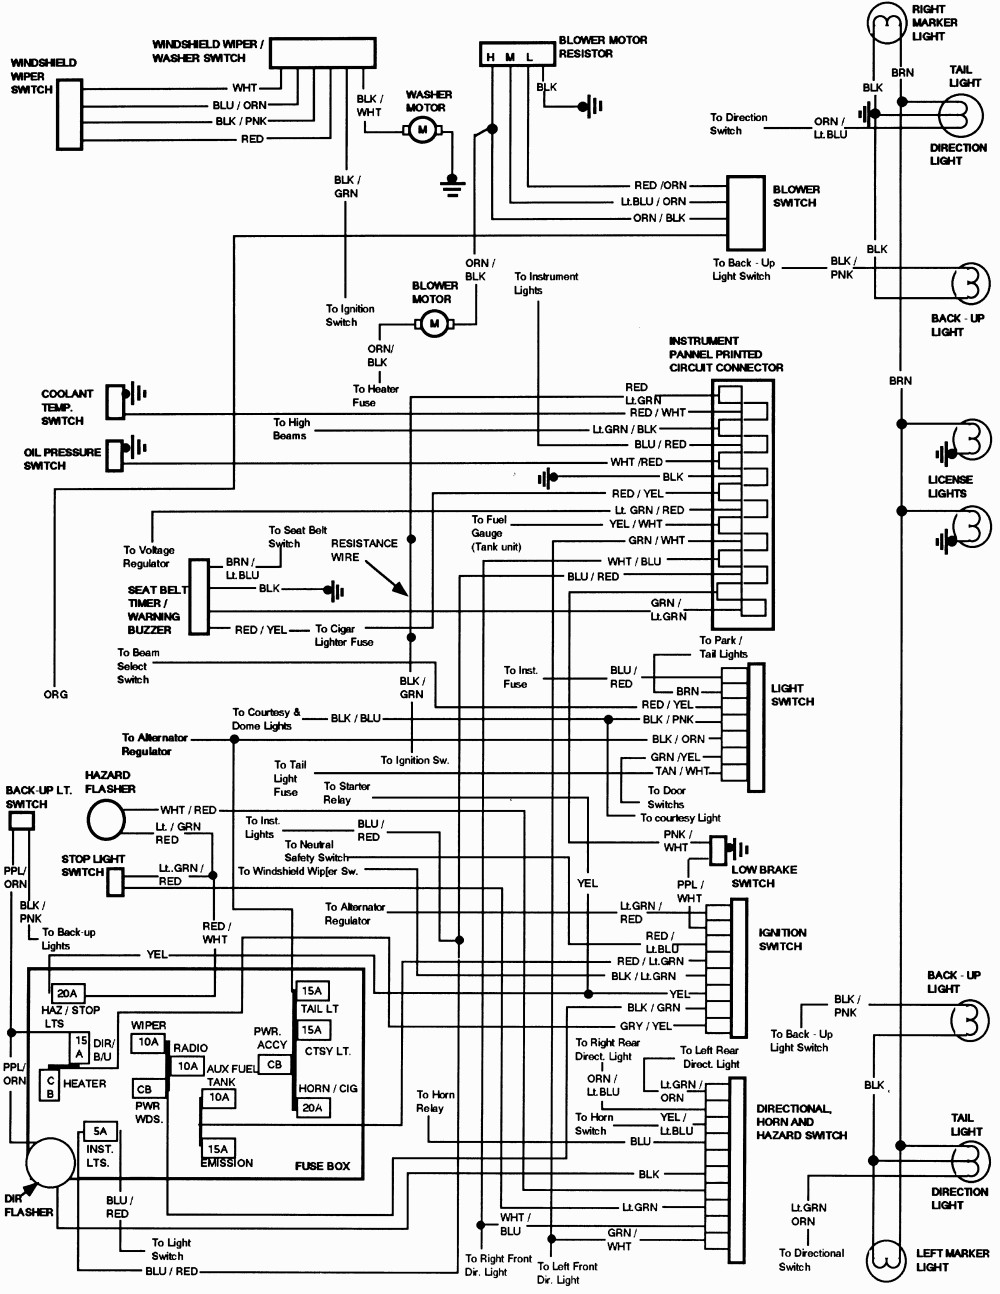 hight resolution of 74 ford bronco fuse box wiring diagram show 89 steering column wiring diagram ford bronco